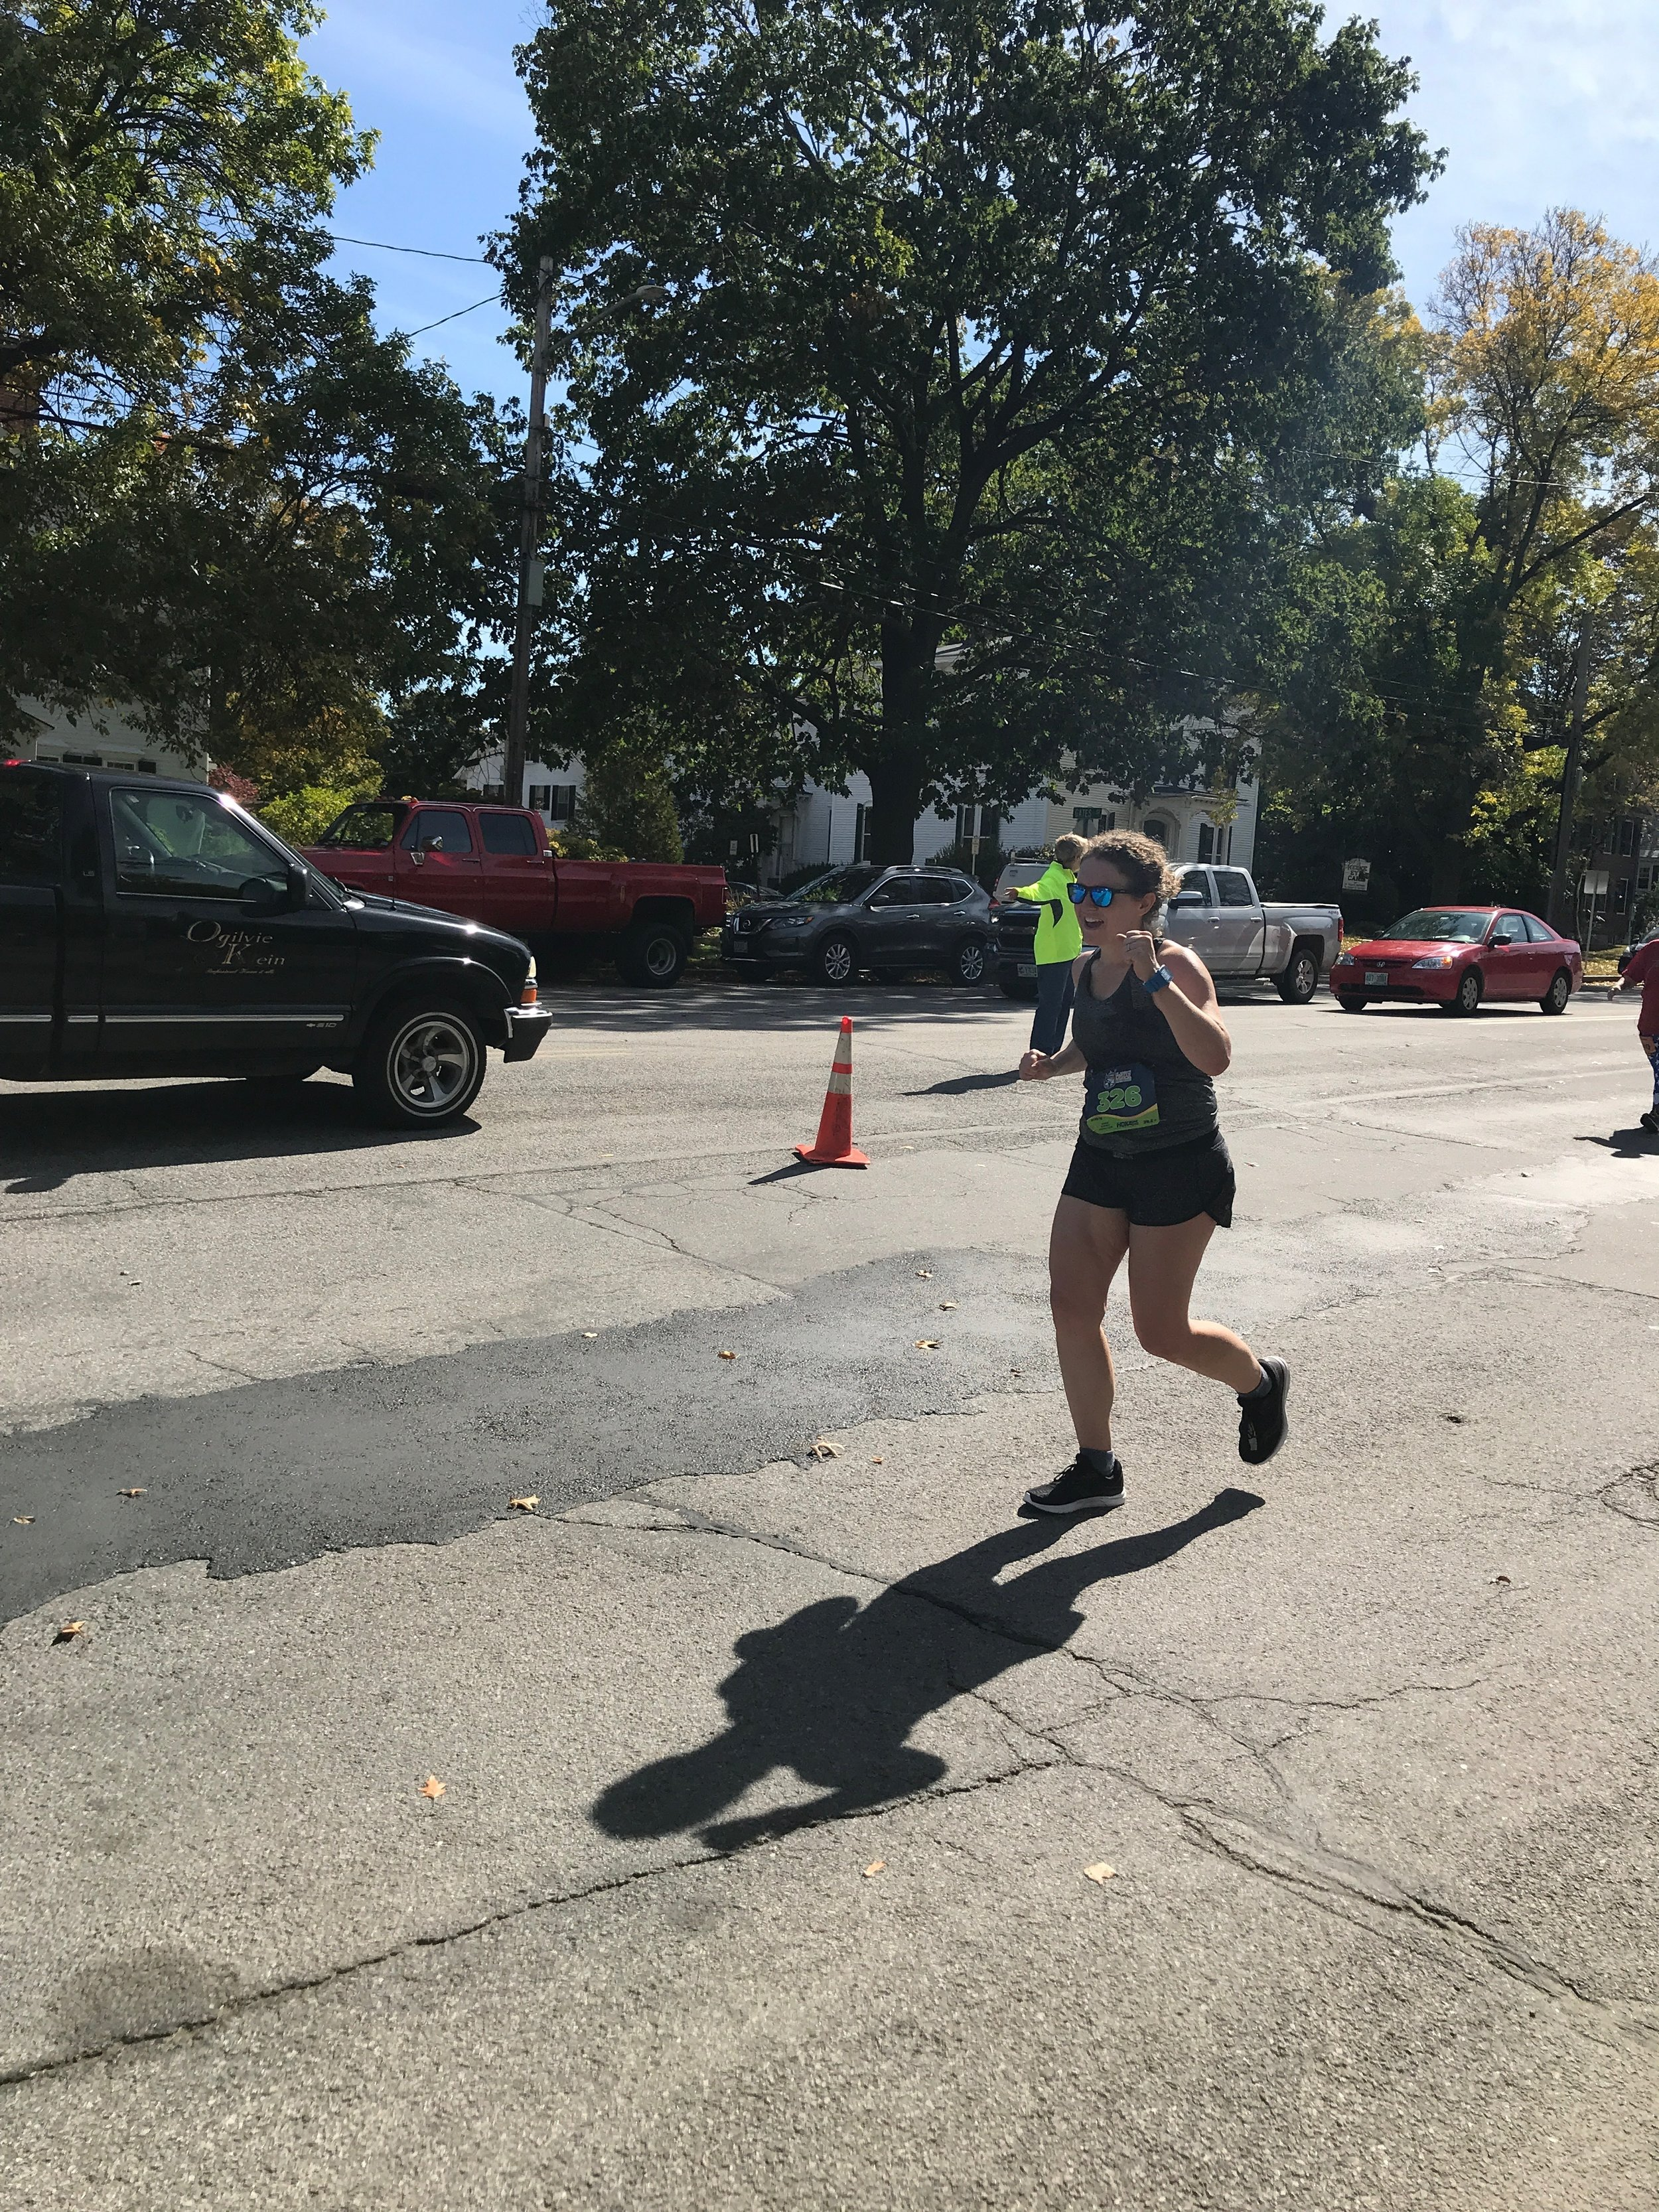 Liz caught me as I was about to turn the corner towards the finish line, and knowing how near it was gave me the strength to muster a fist-pump.